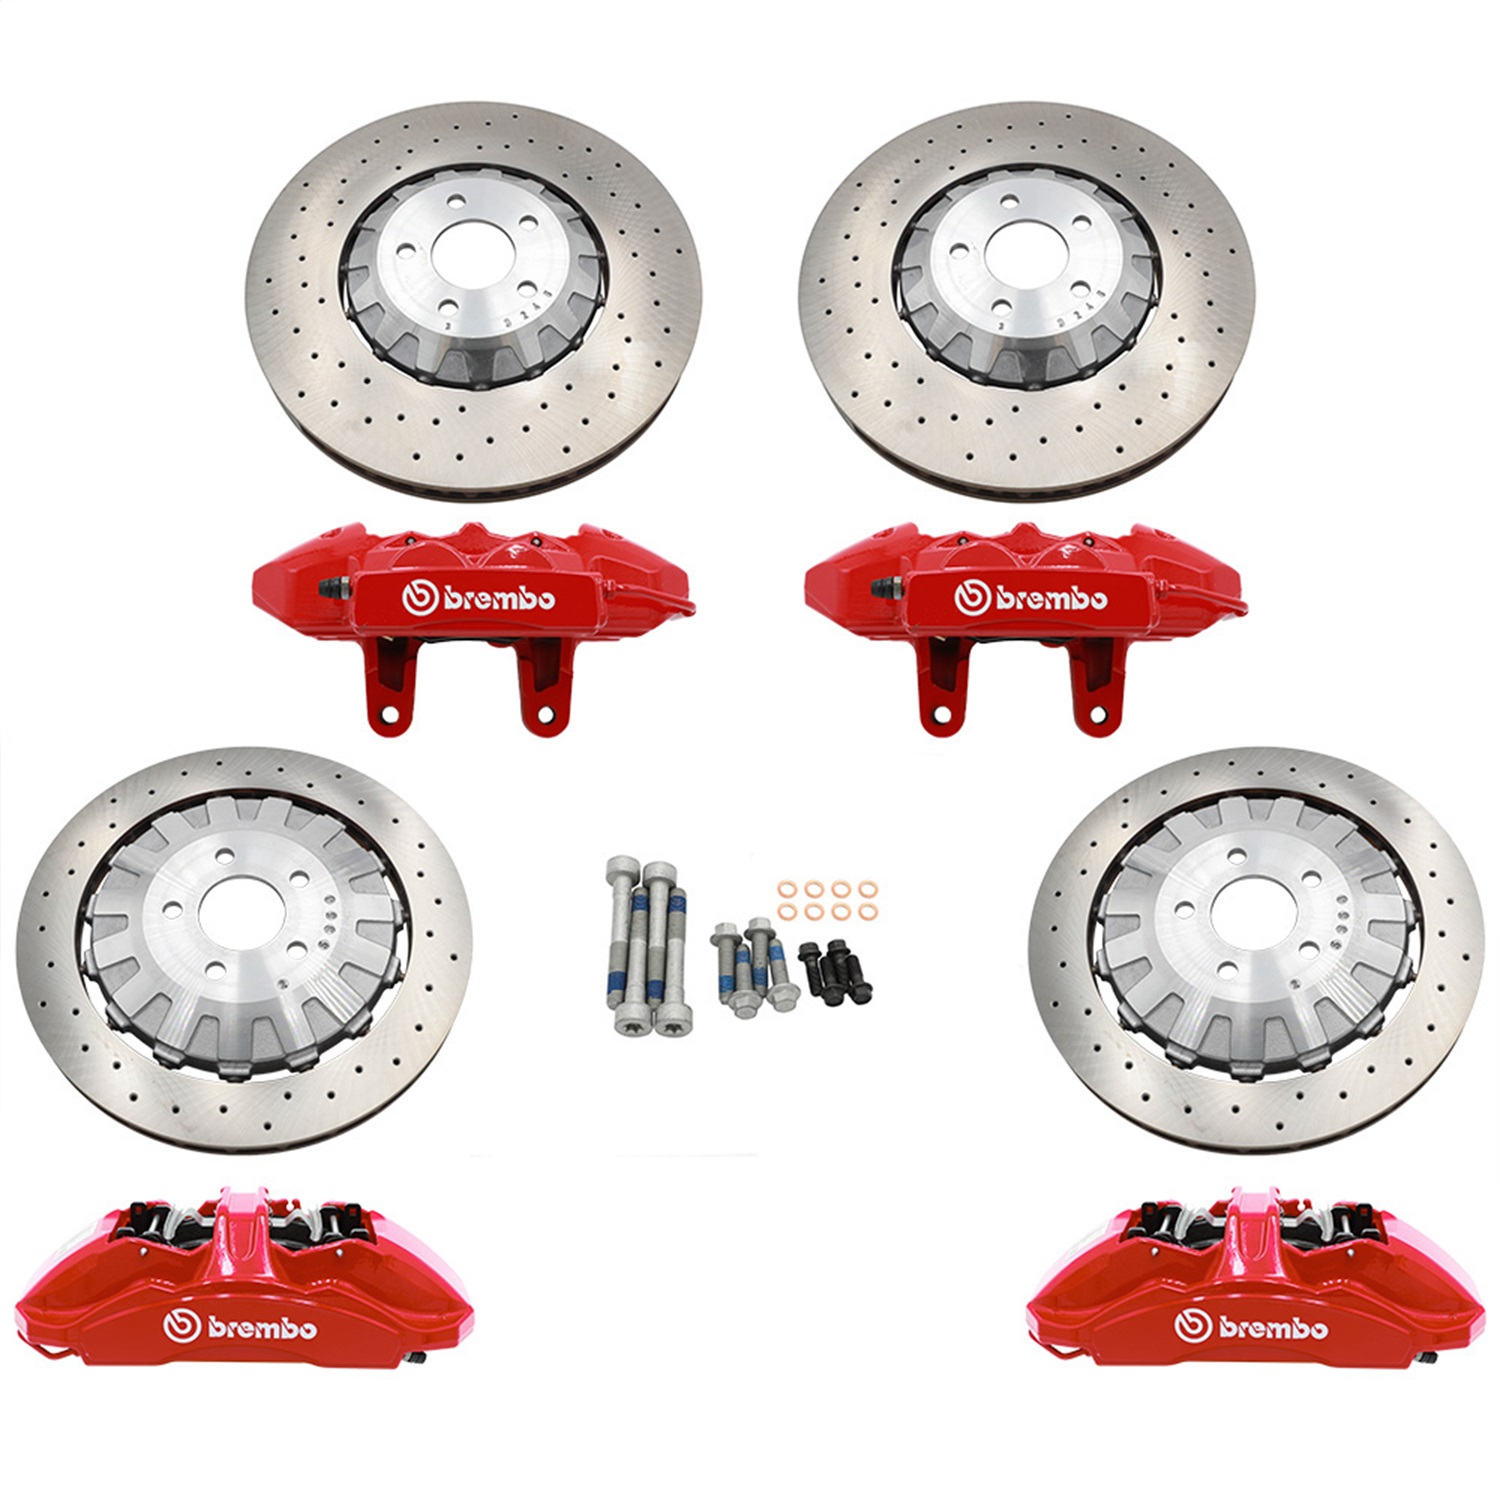 Ford Performance Parts M-2300-AA Disc Brake Upgrade Kit Fits 15-18 Mustang